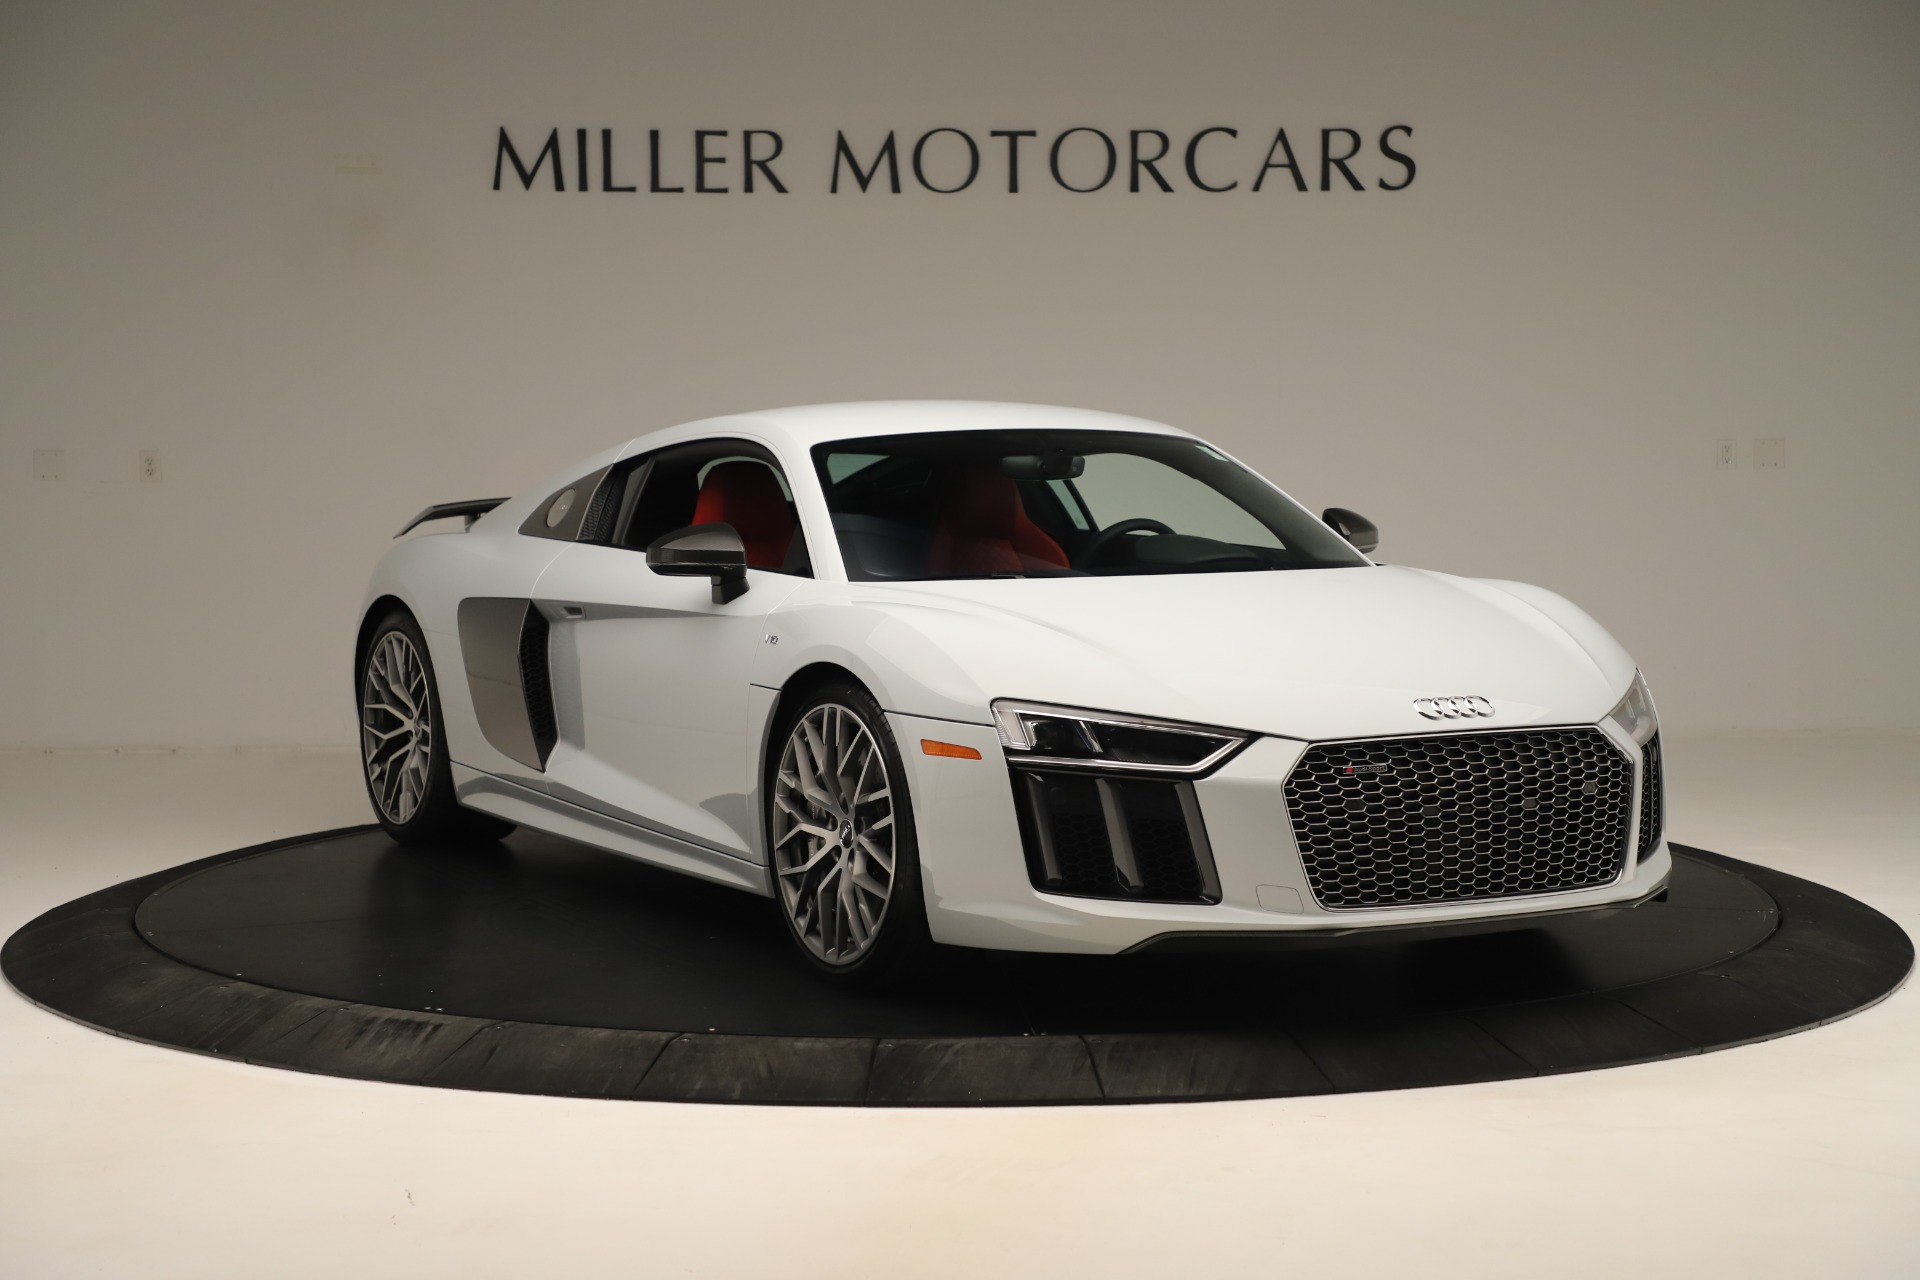 Used 2018 Audi R8 5.2 quattro V10 Plus For Sale In Westport, CT 3360_p11